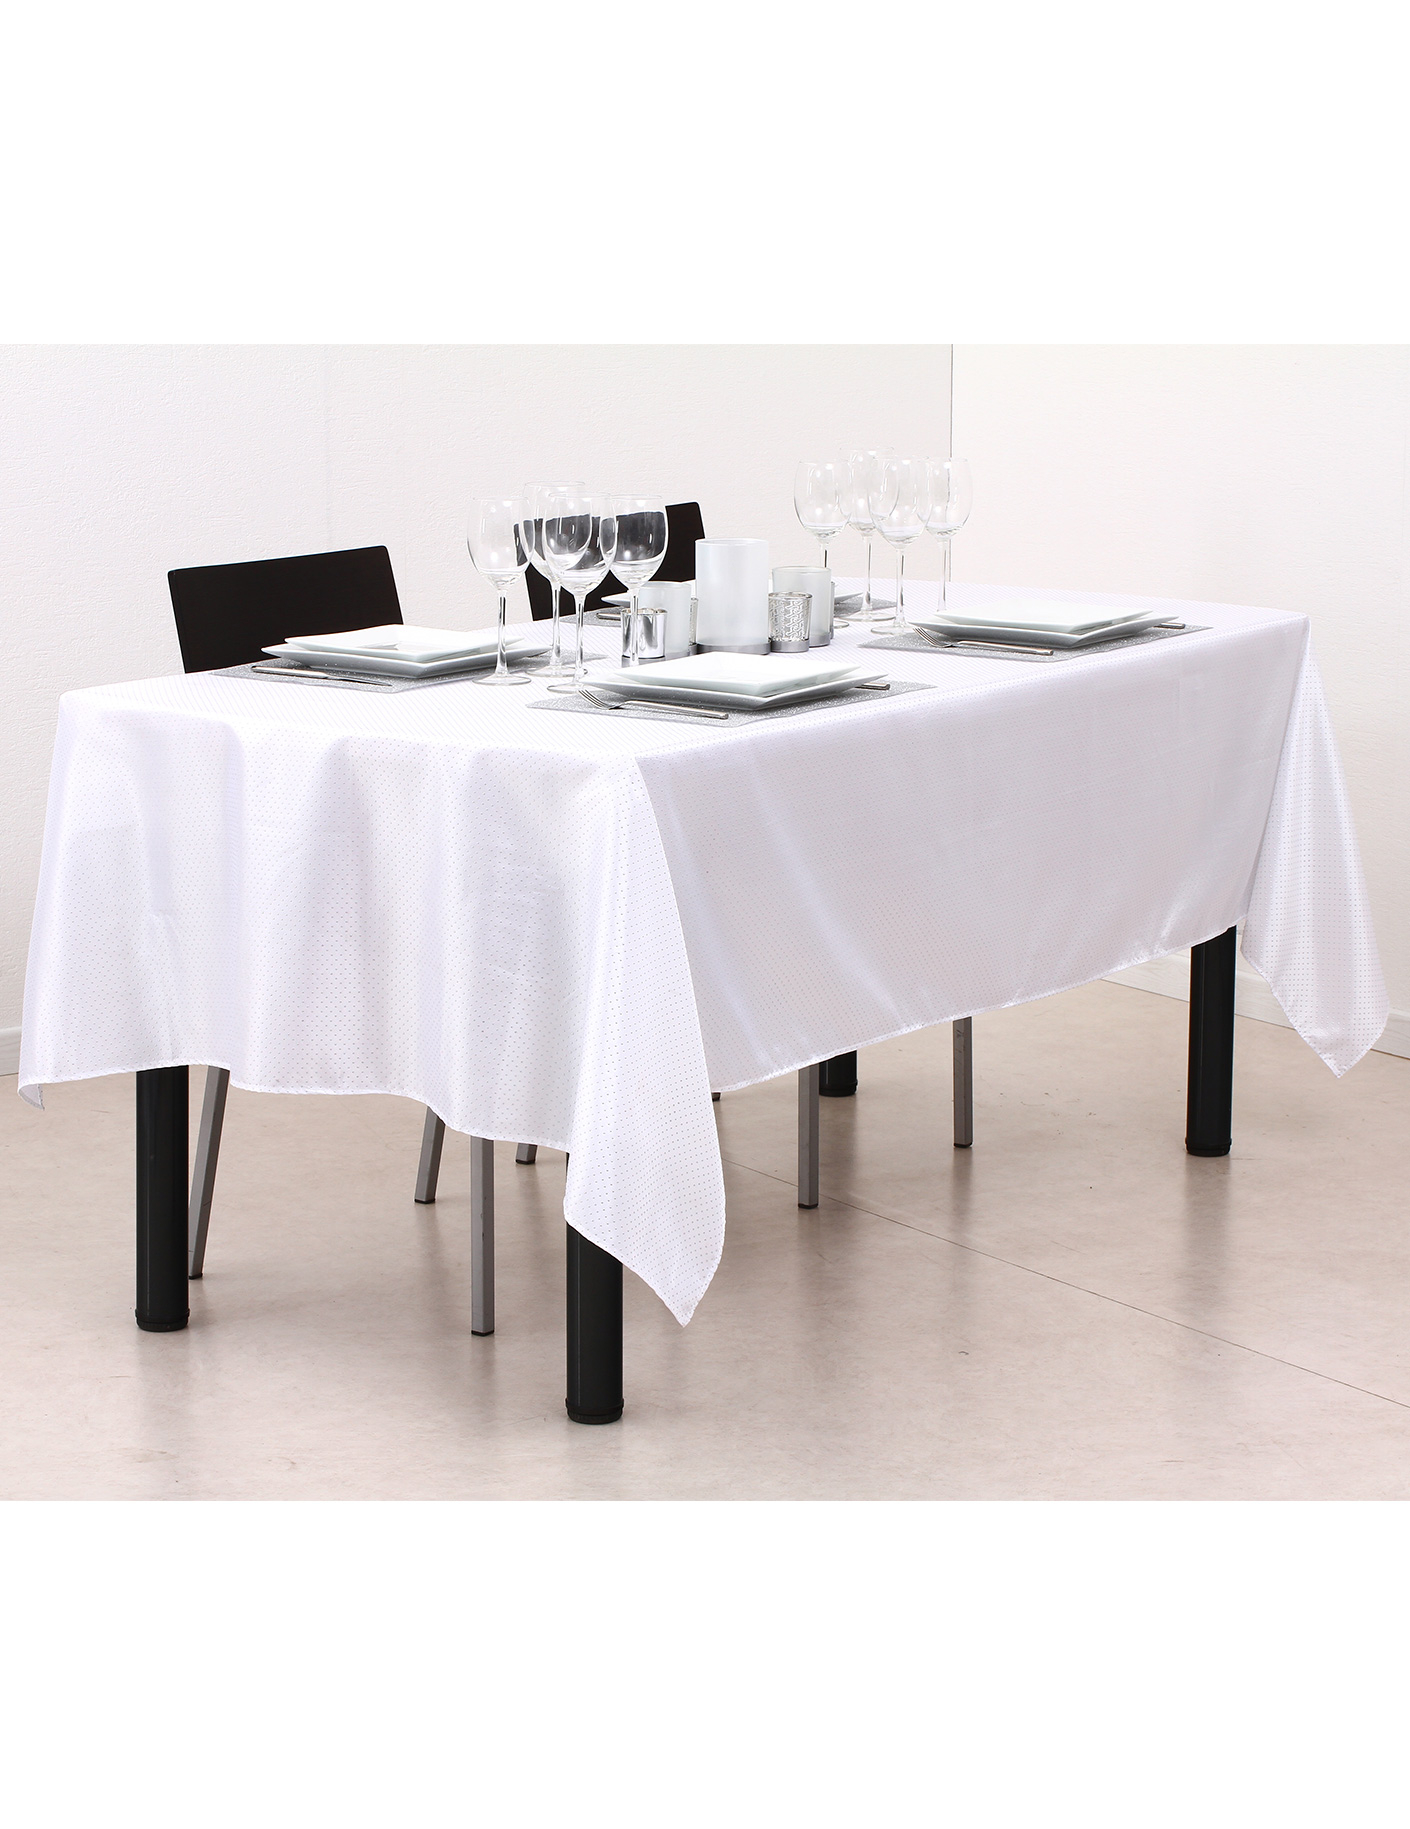 nappe blanche rectangulaire location nappe rectangulaire blanche 150 x 240cm pour nappe. Black Bedroom Furniture Sets. Home Design Ideas